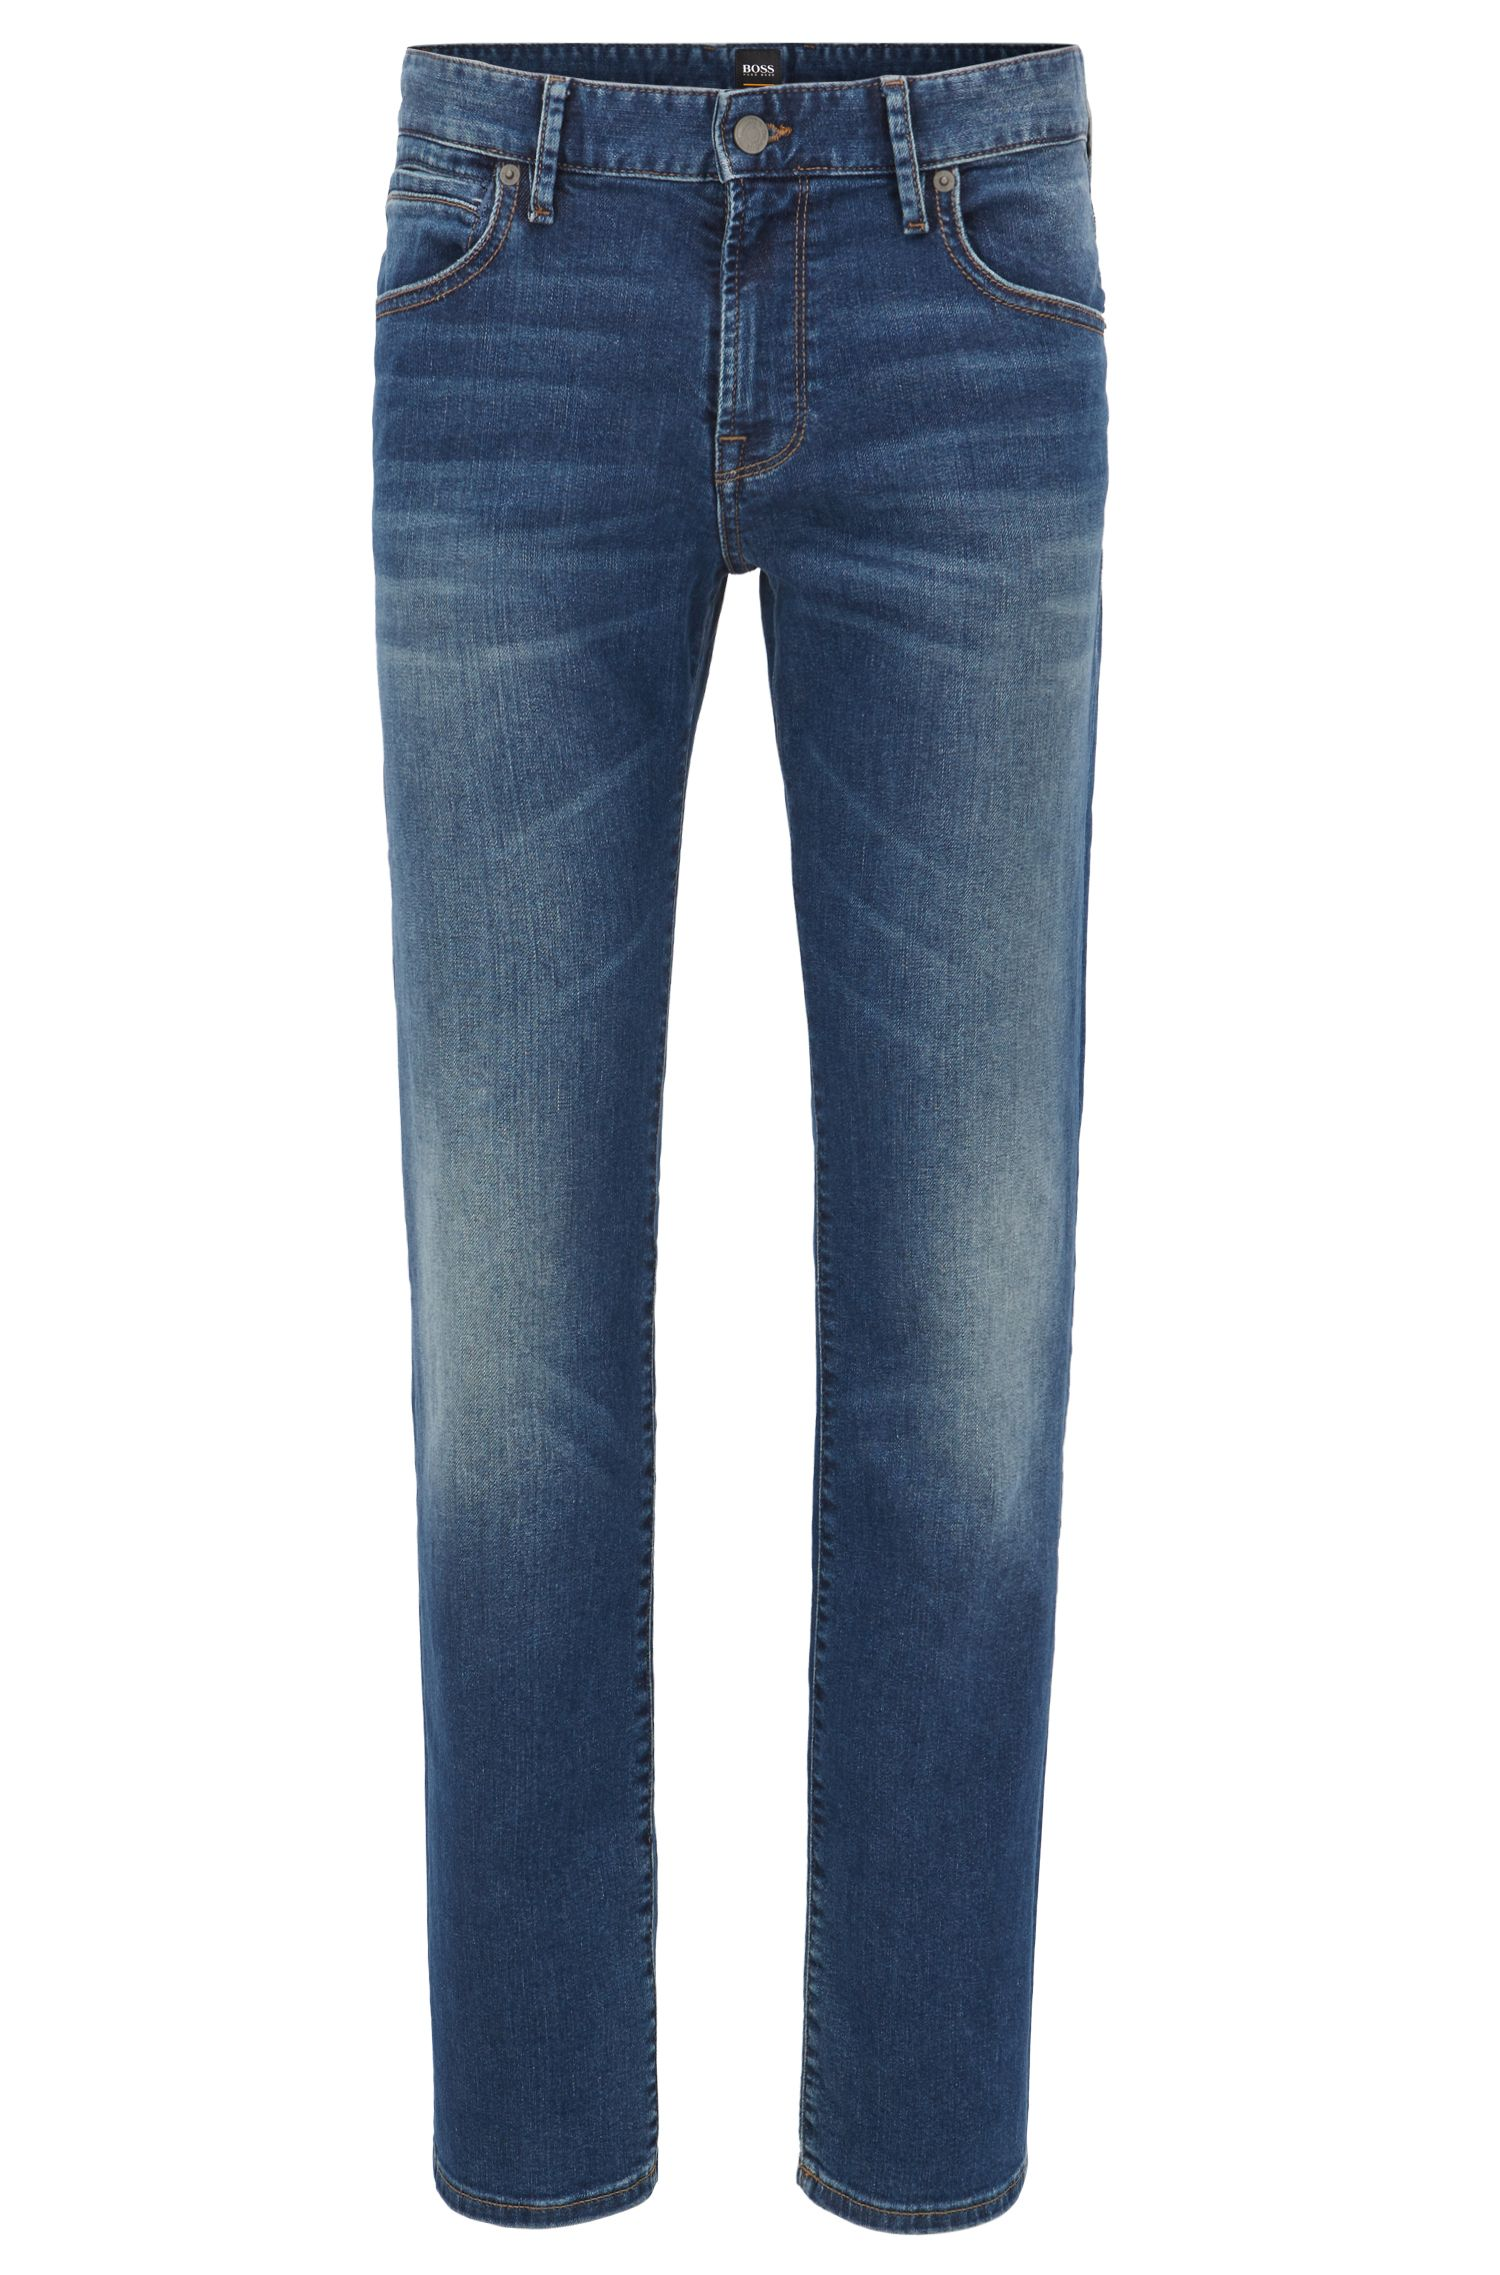 Jeans regular fit in denim indaco effetto vintage